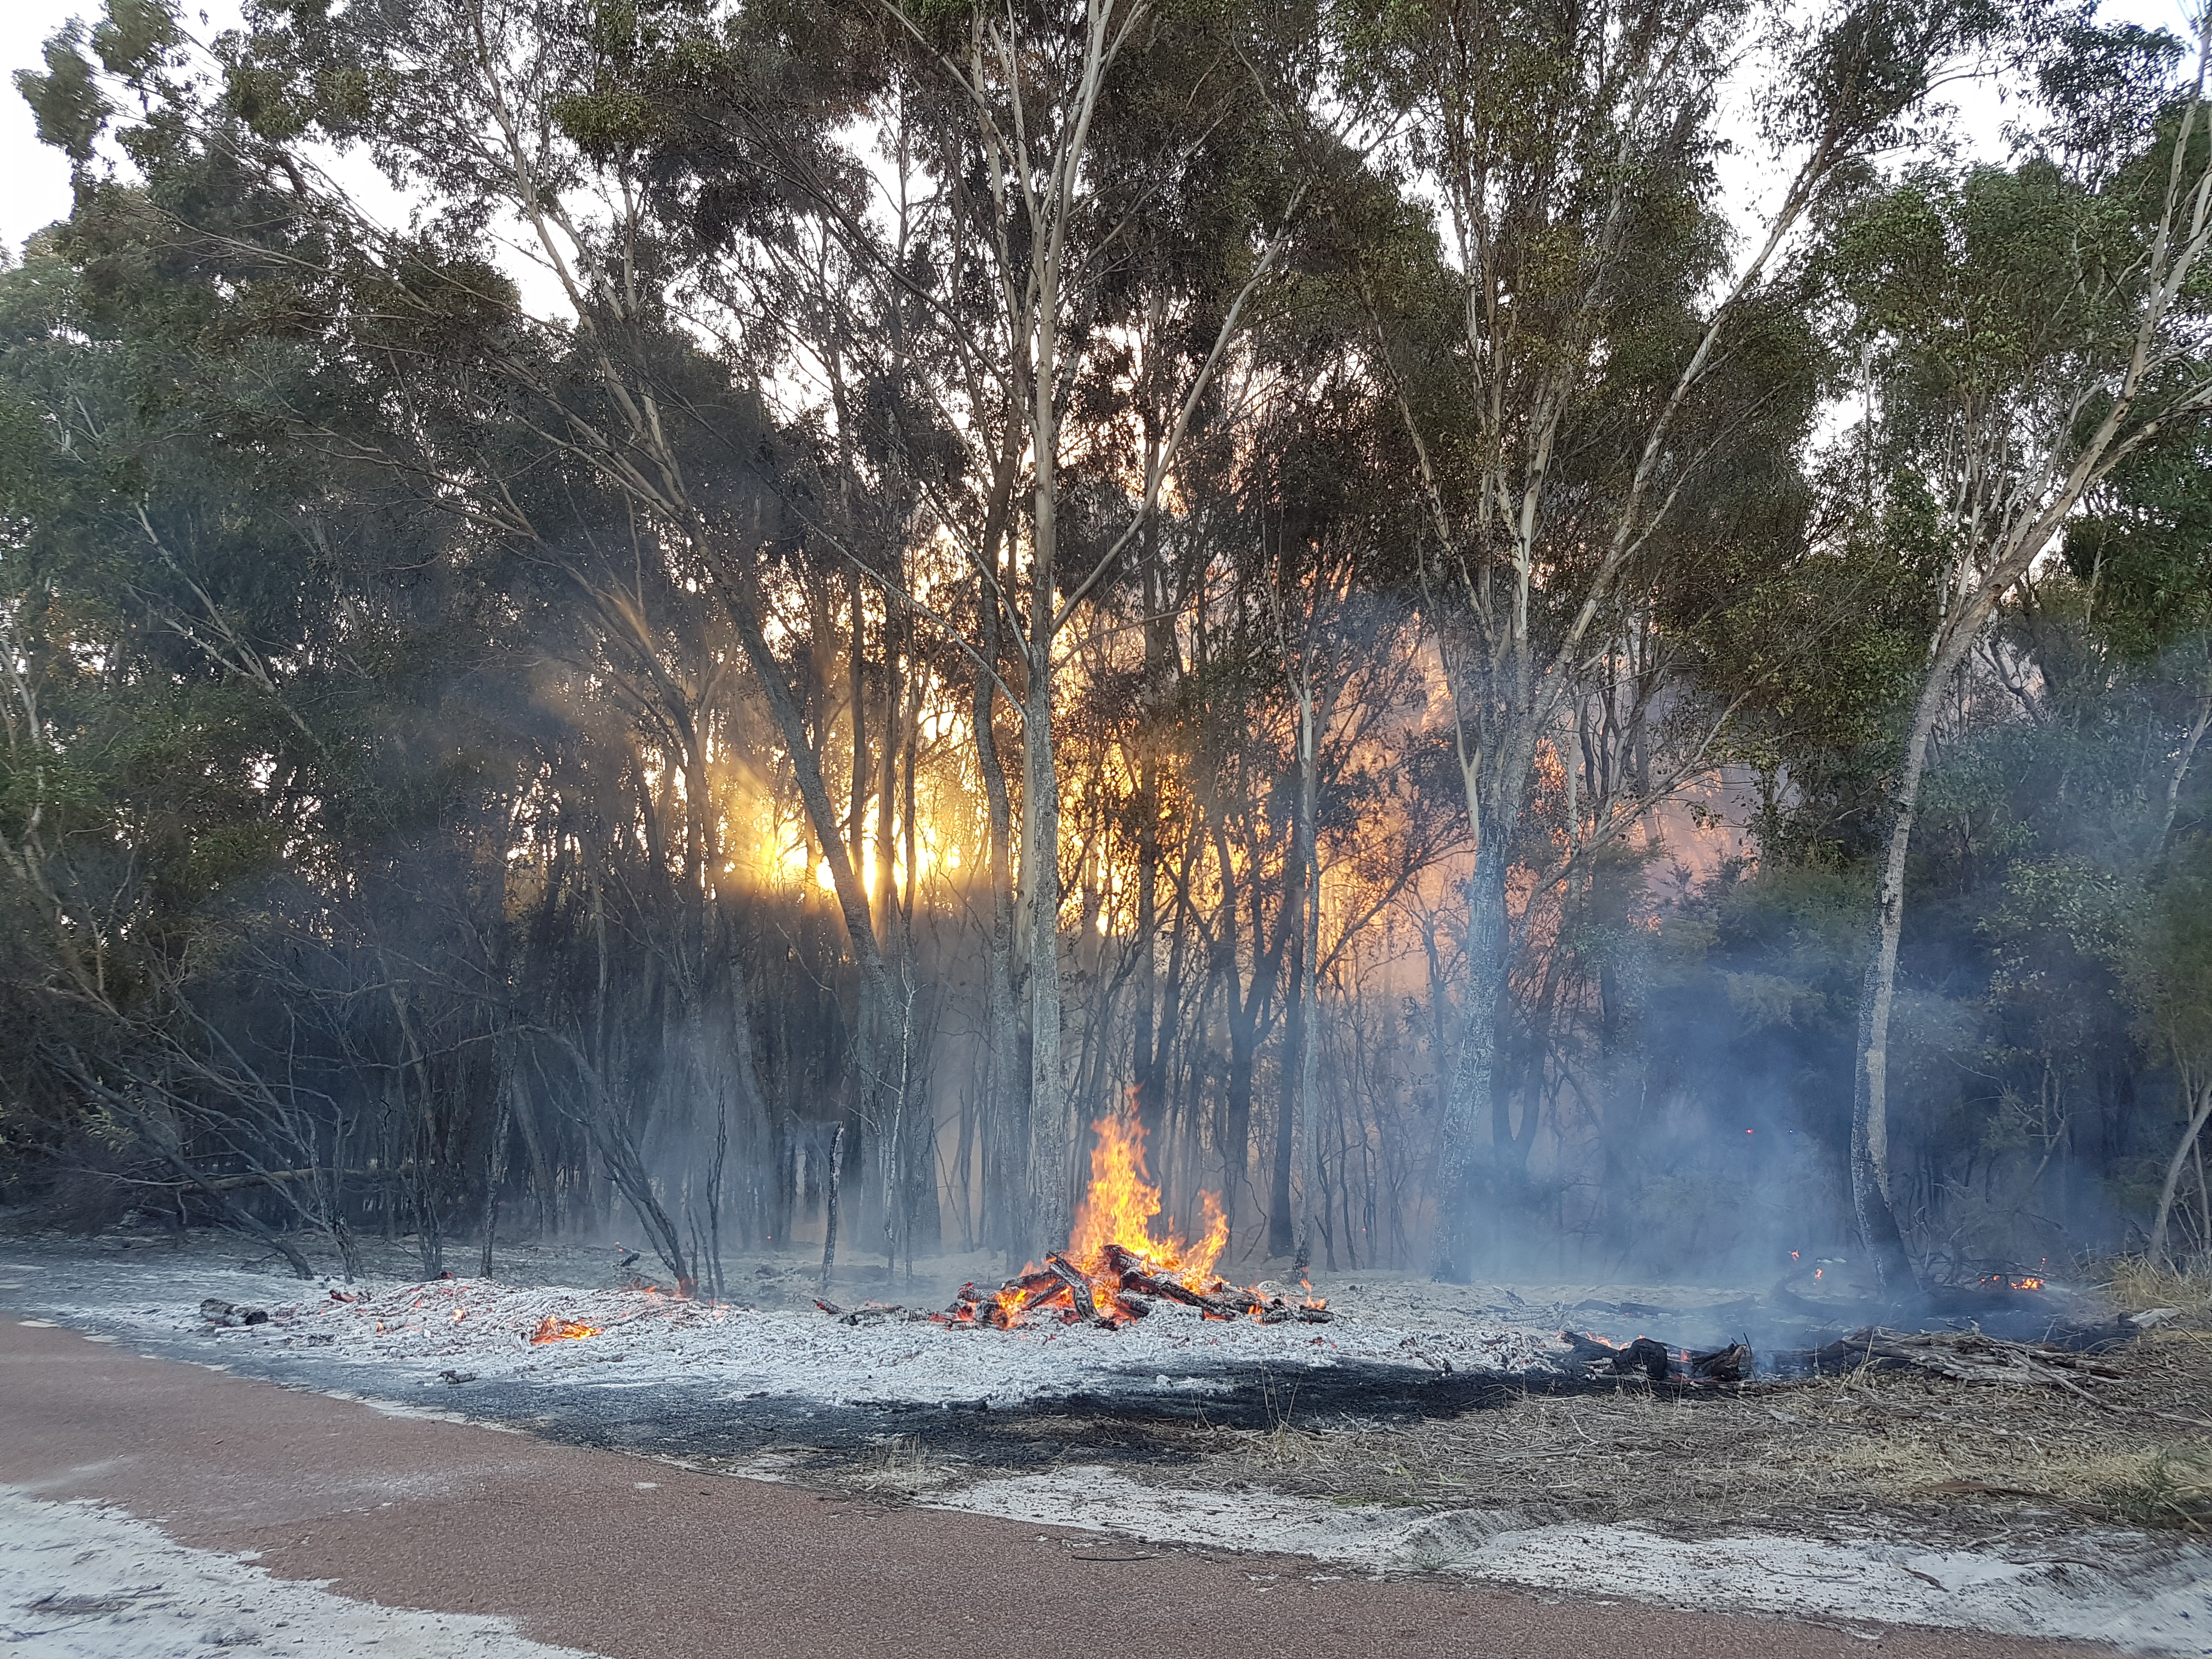 The fire at Richard Lewis Reserve in Bull Creek. Picture: Josh Zimmerman.